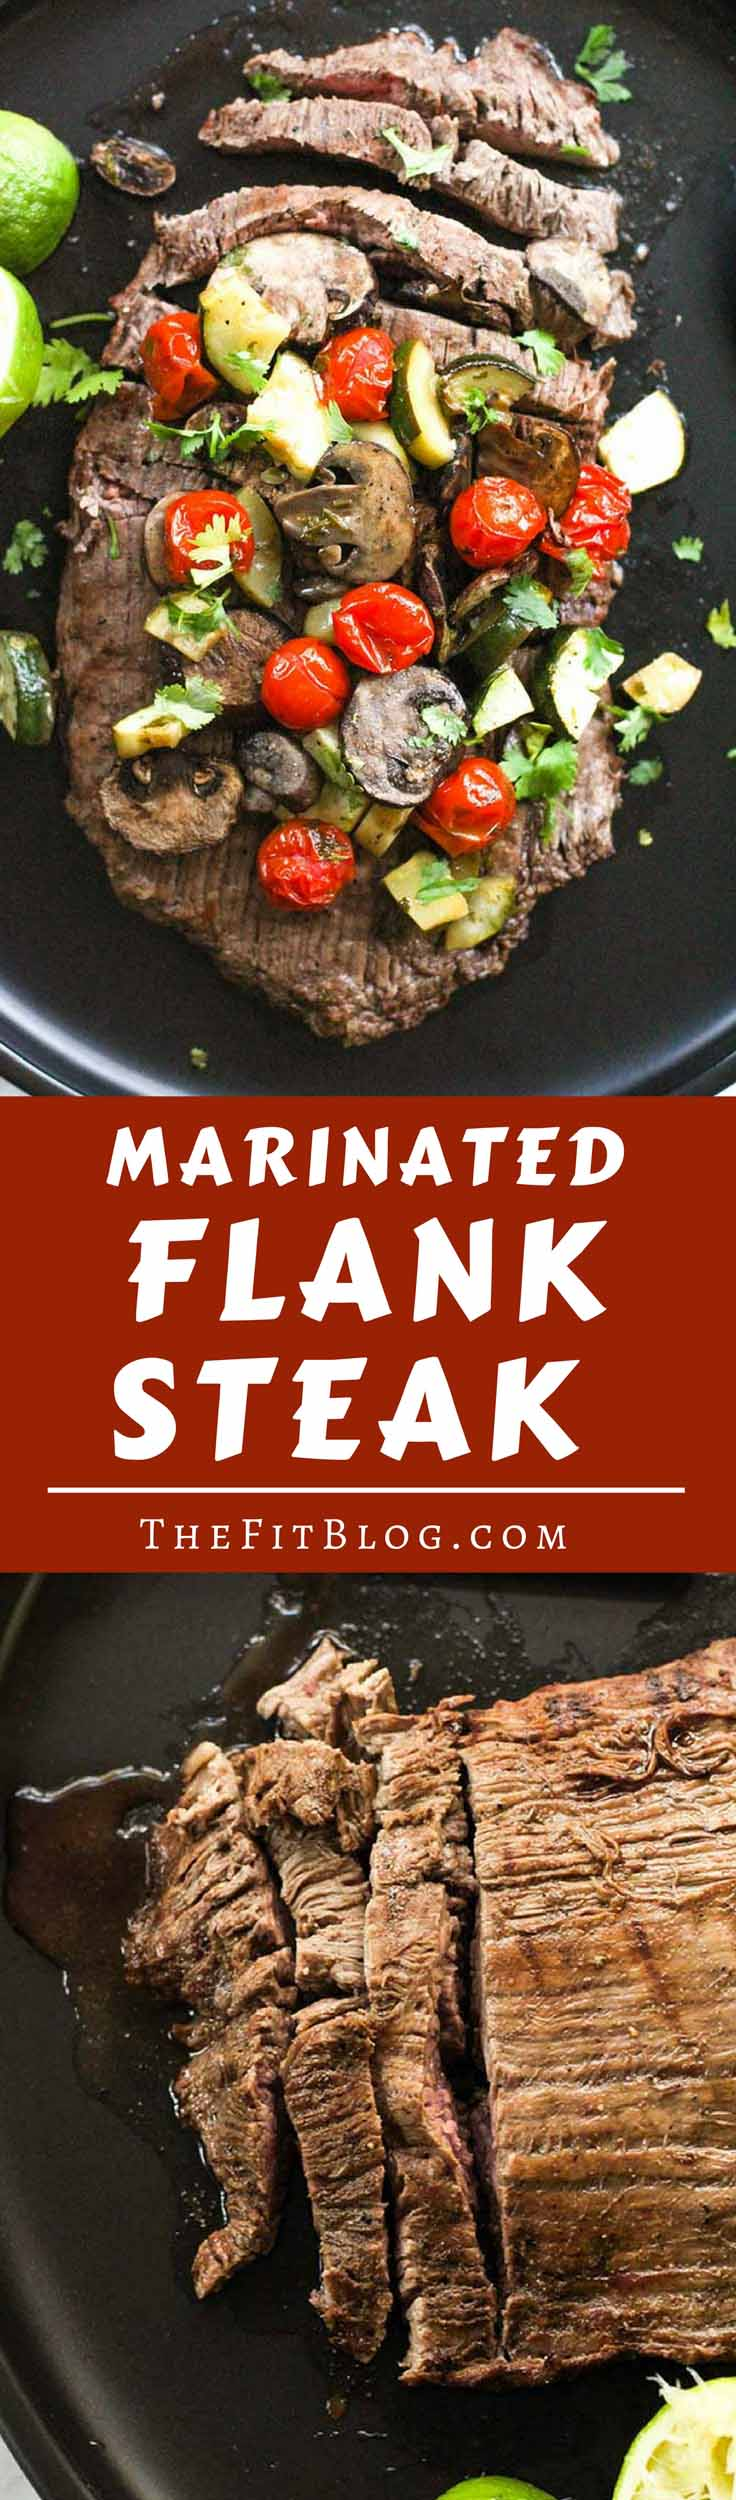 This Marinated Flank Steak with Roasted Mushrooms, Tomatoes, and Zucchini is perfect for any time of the year. Super juicy and flavorful! (high protein, low carb, sugar free, gluten free, diabetes friendly, Paleo, Whole 30)